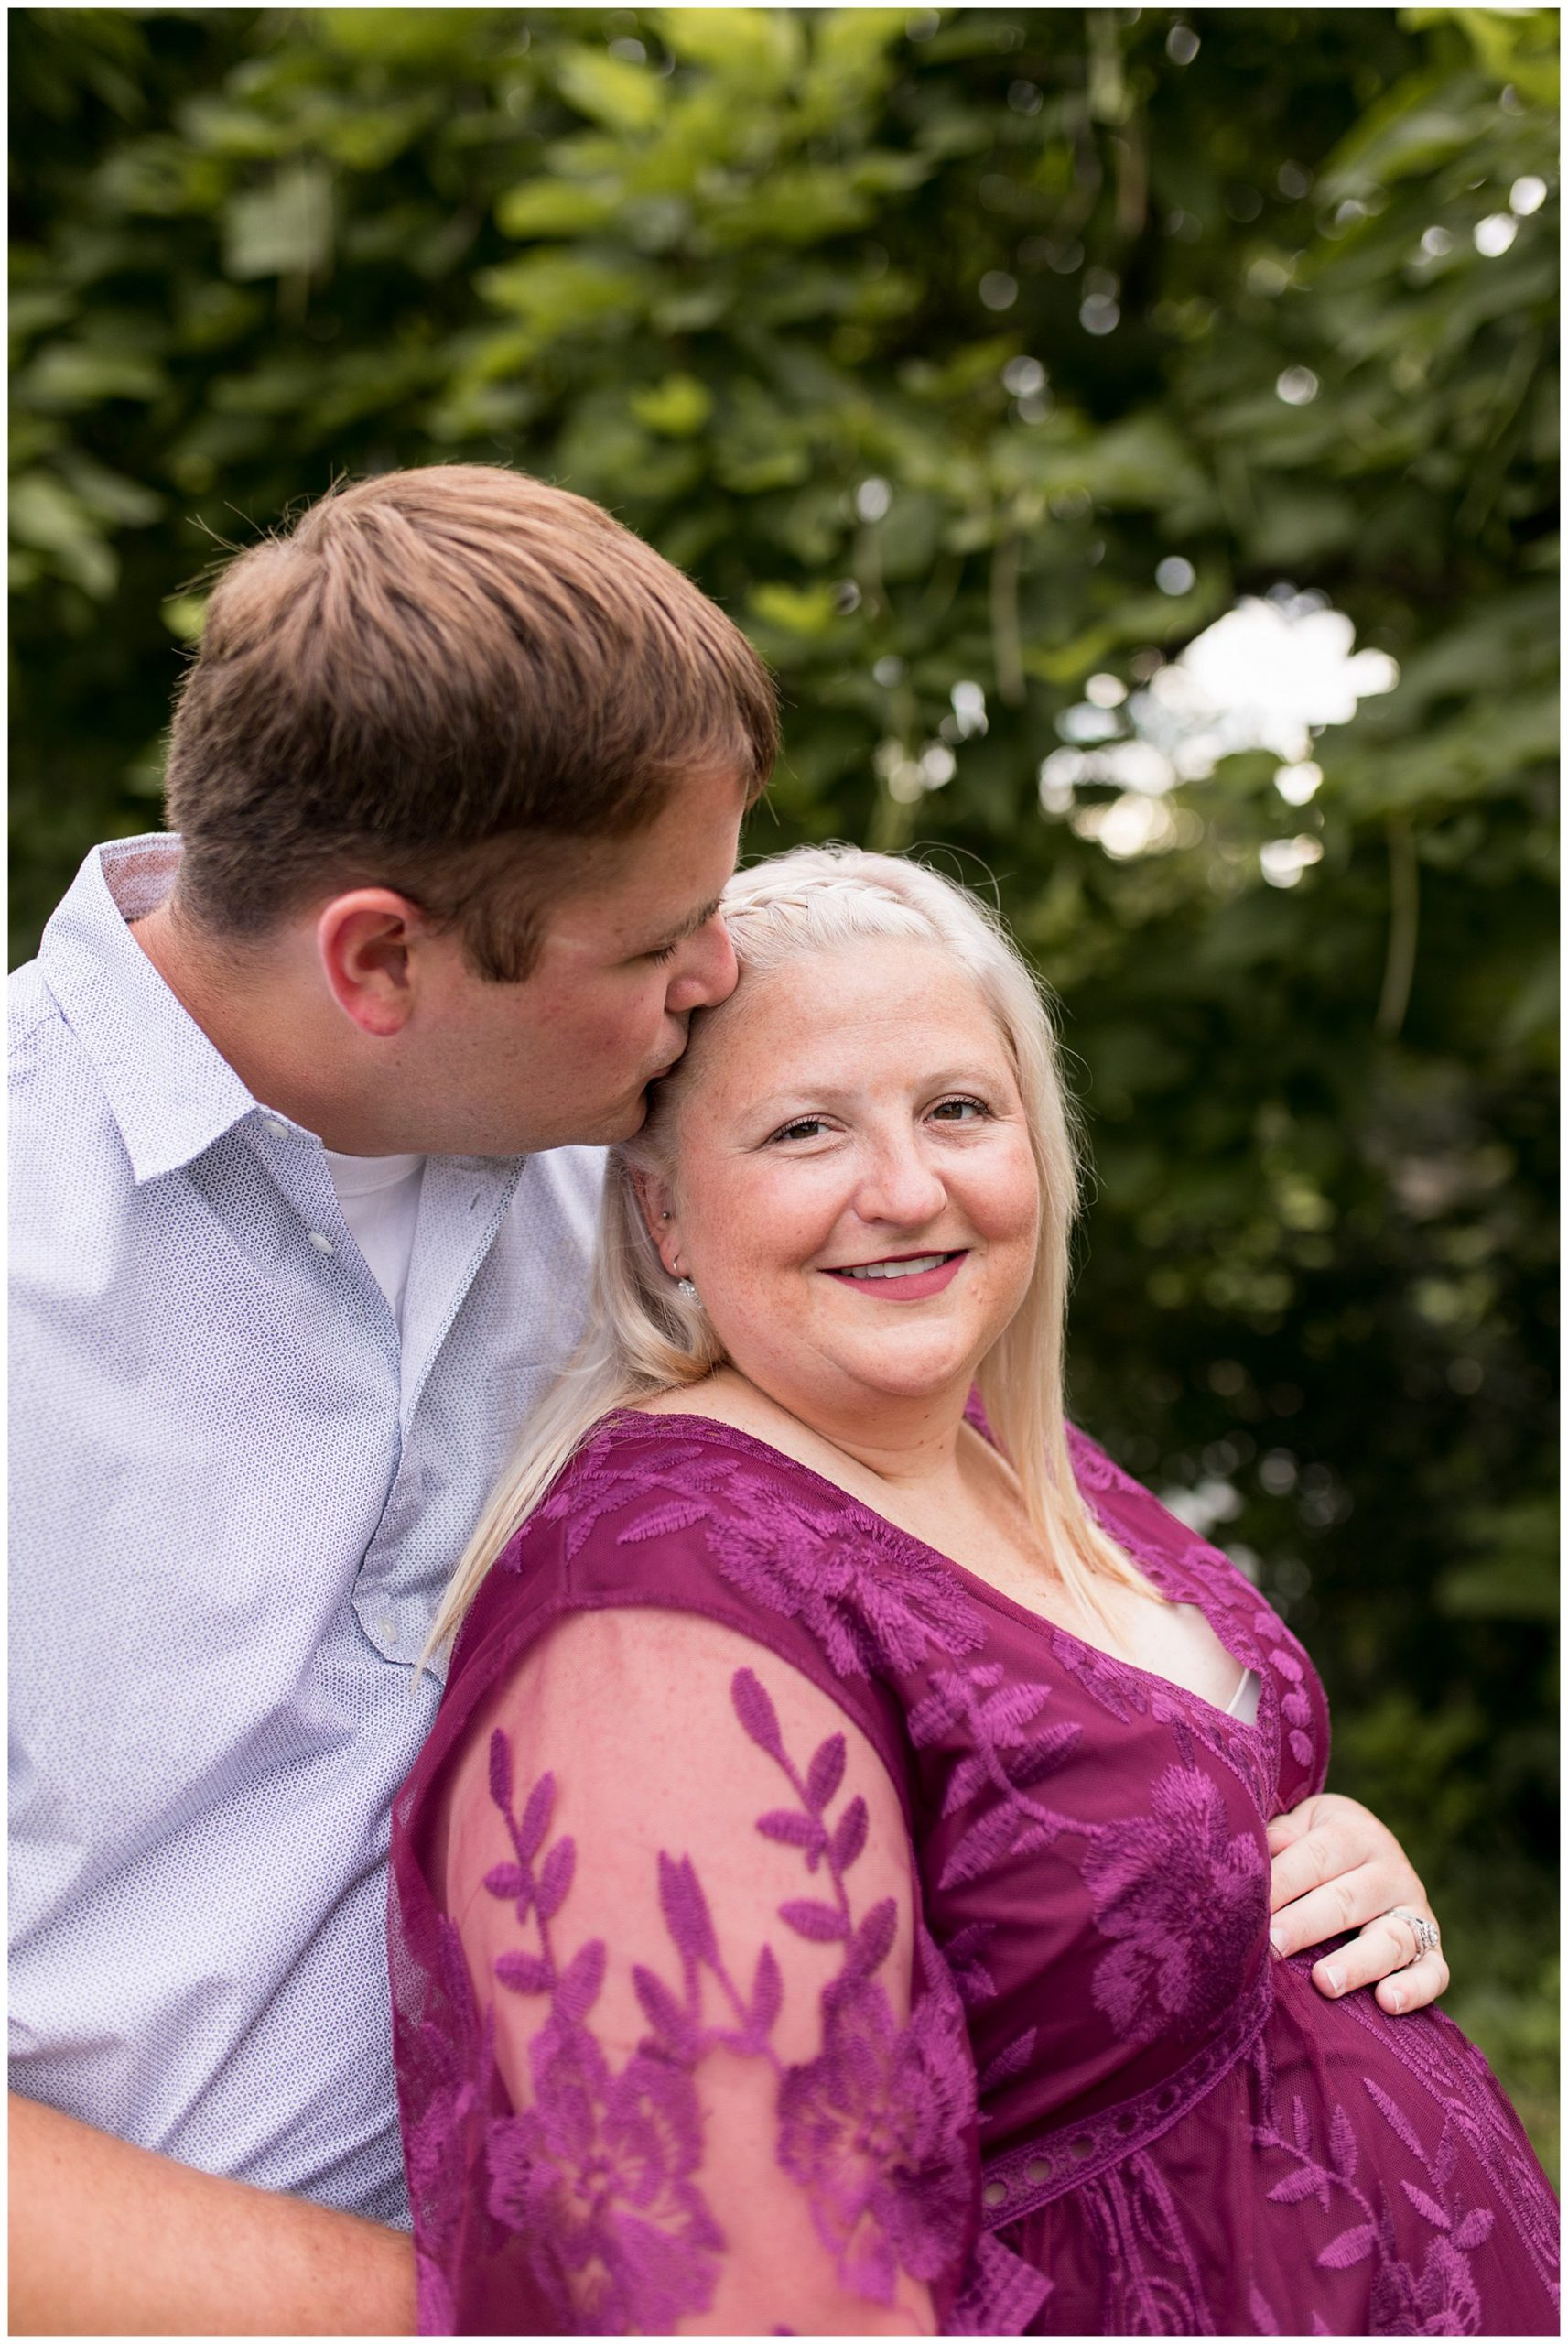 Morrow's Meadow maternity session in Muncie Indiana